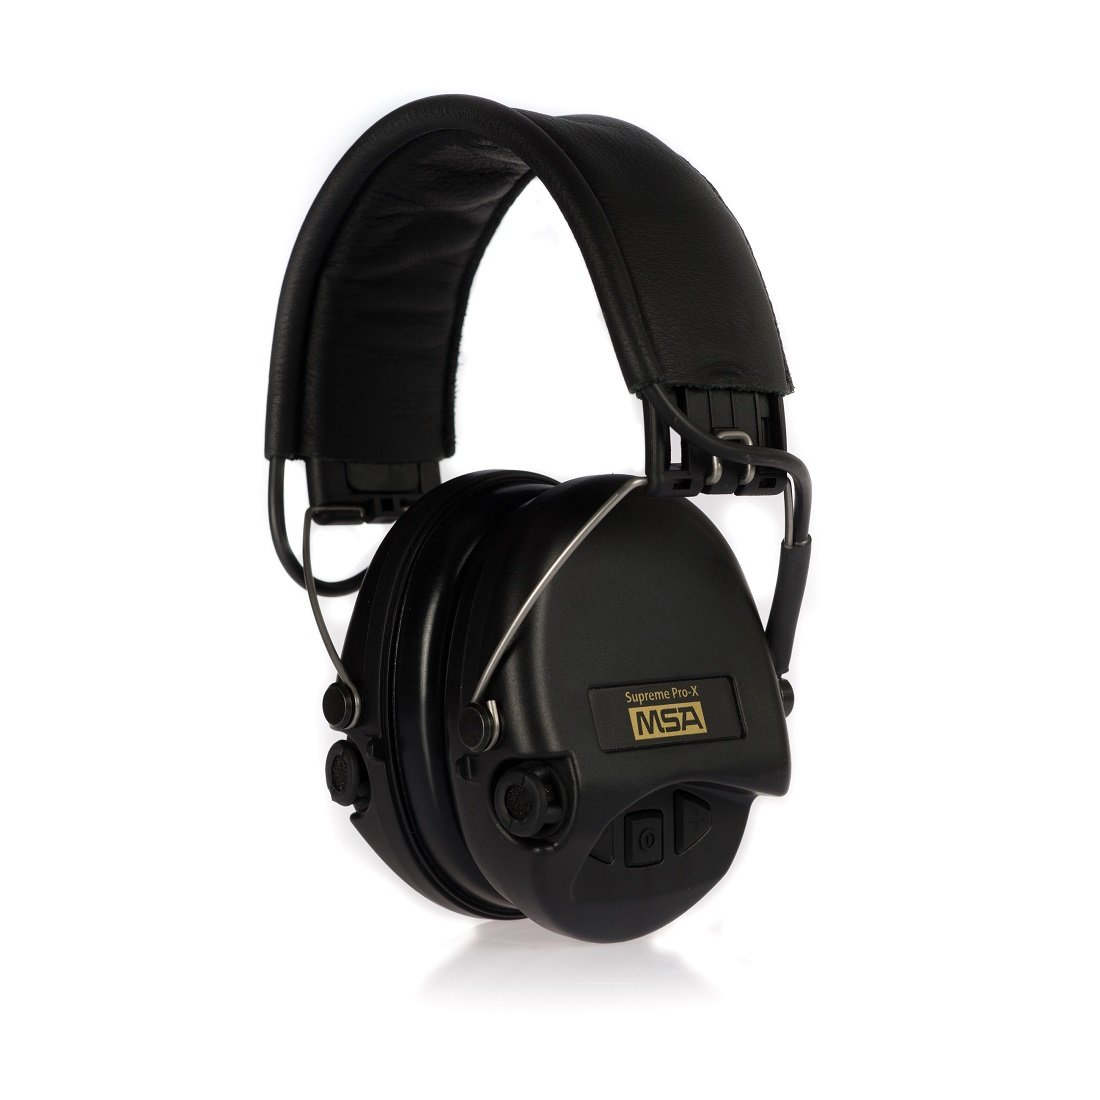 MSA Sordin SOR75302-X/L-02 Supreme Pro X - Standard Edition - Electronic Earmuff with black leather band, black cups and foam seals fitted by Sordin